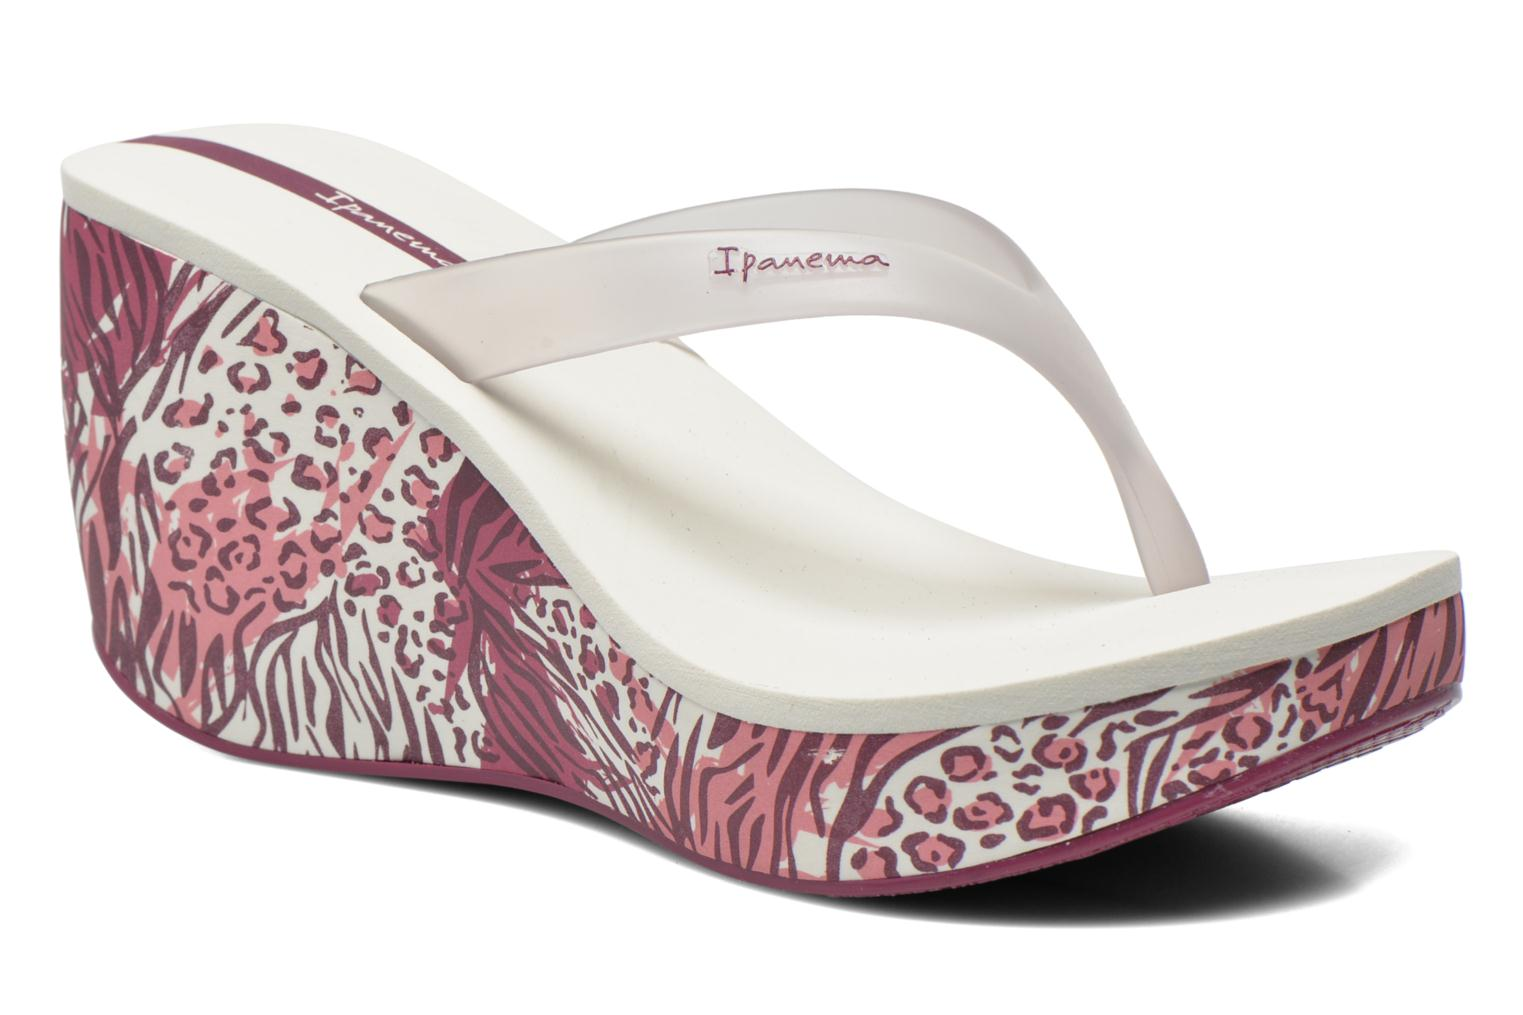 Marques Chaussure femme Ipanema femme Lipstick Thong White/Purple/White